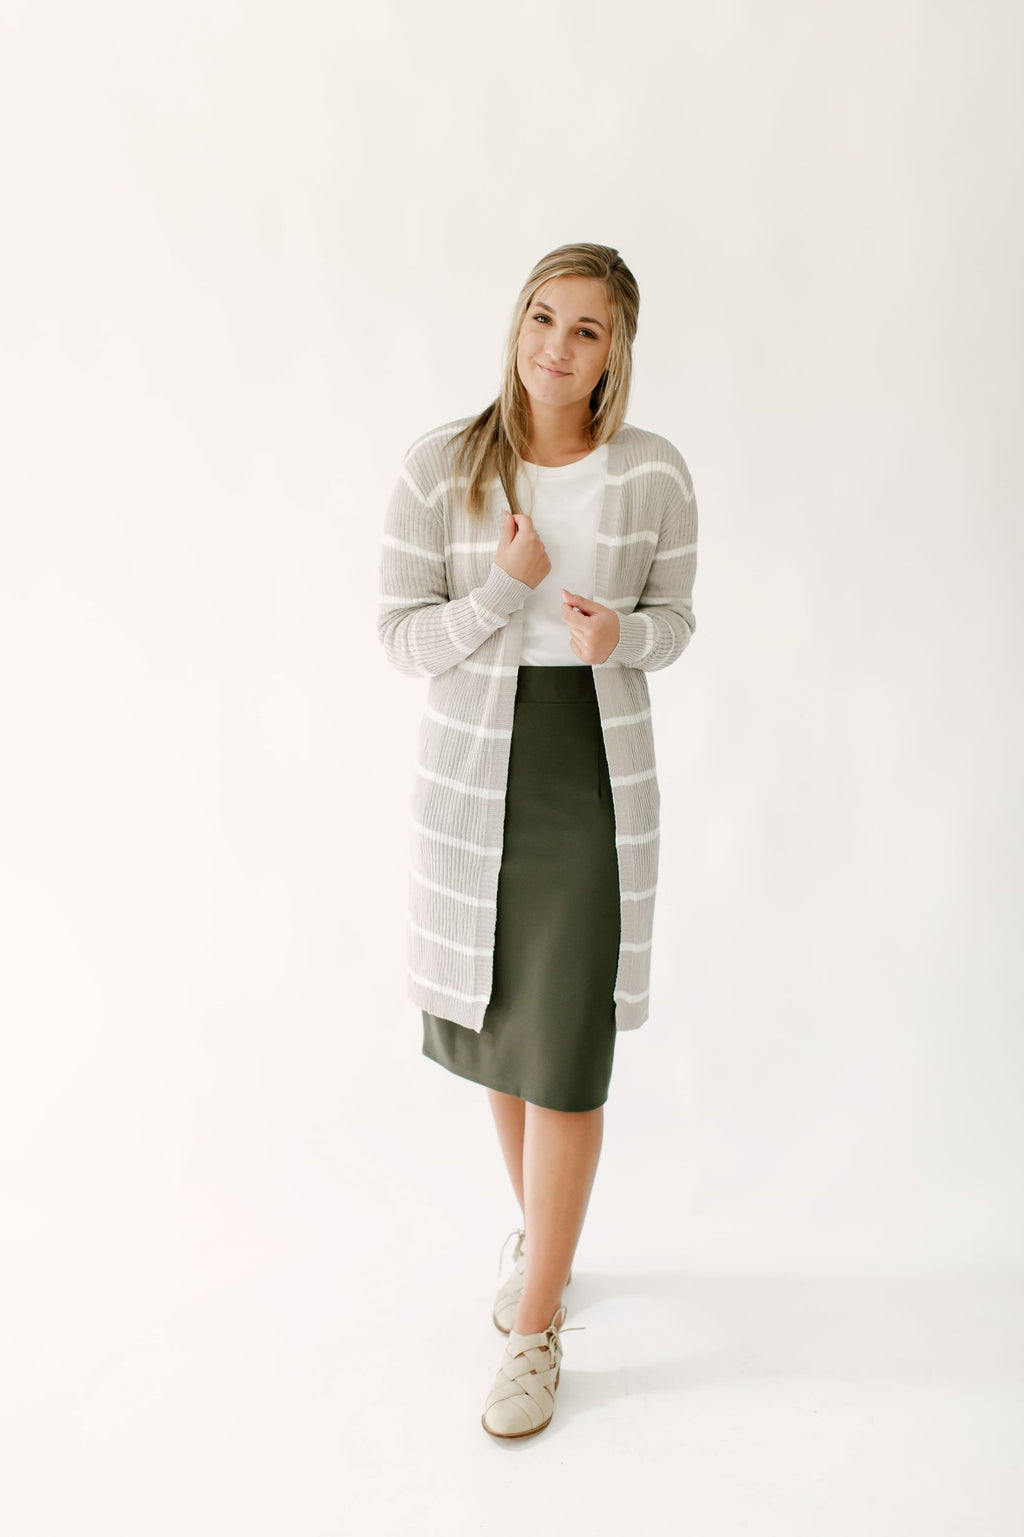 'Brinley' Ribbed Cardigan in White/Taupe Stripe